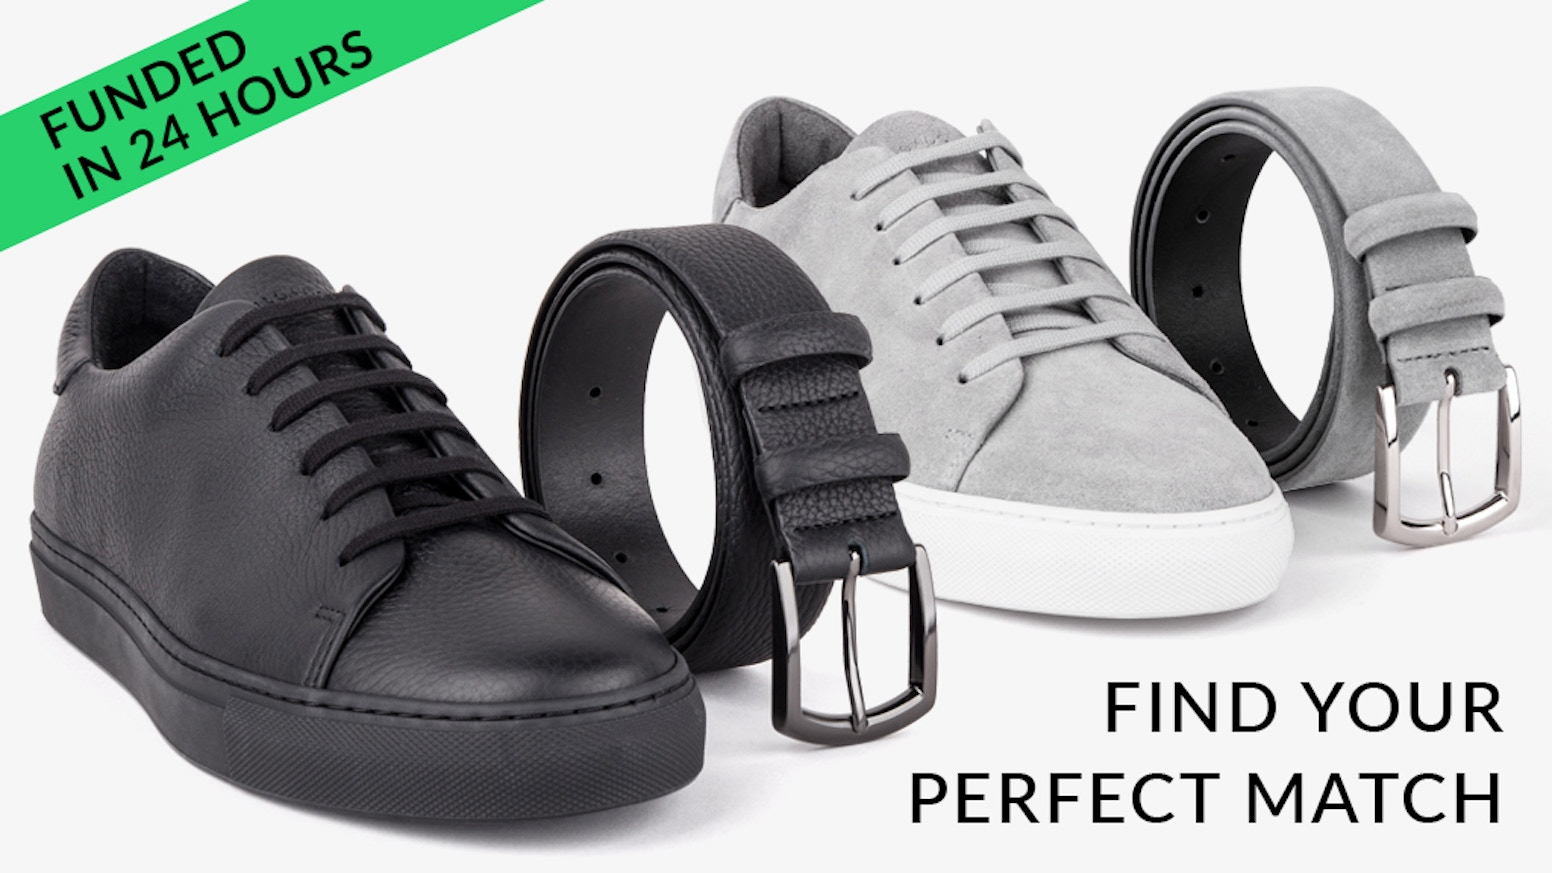 Timeless Design   Premium Leathers   No Luxury Markup   100% Sustainably Handcrafted in Europe